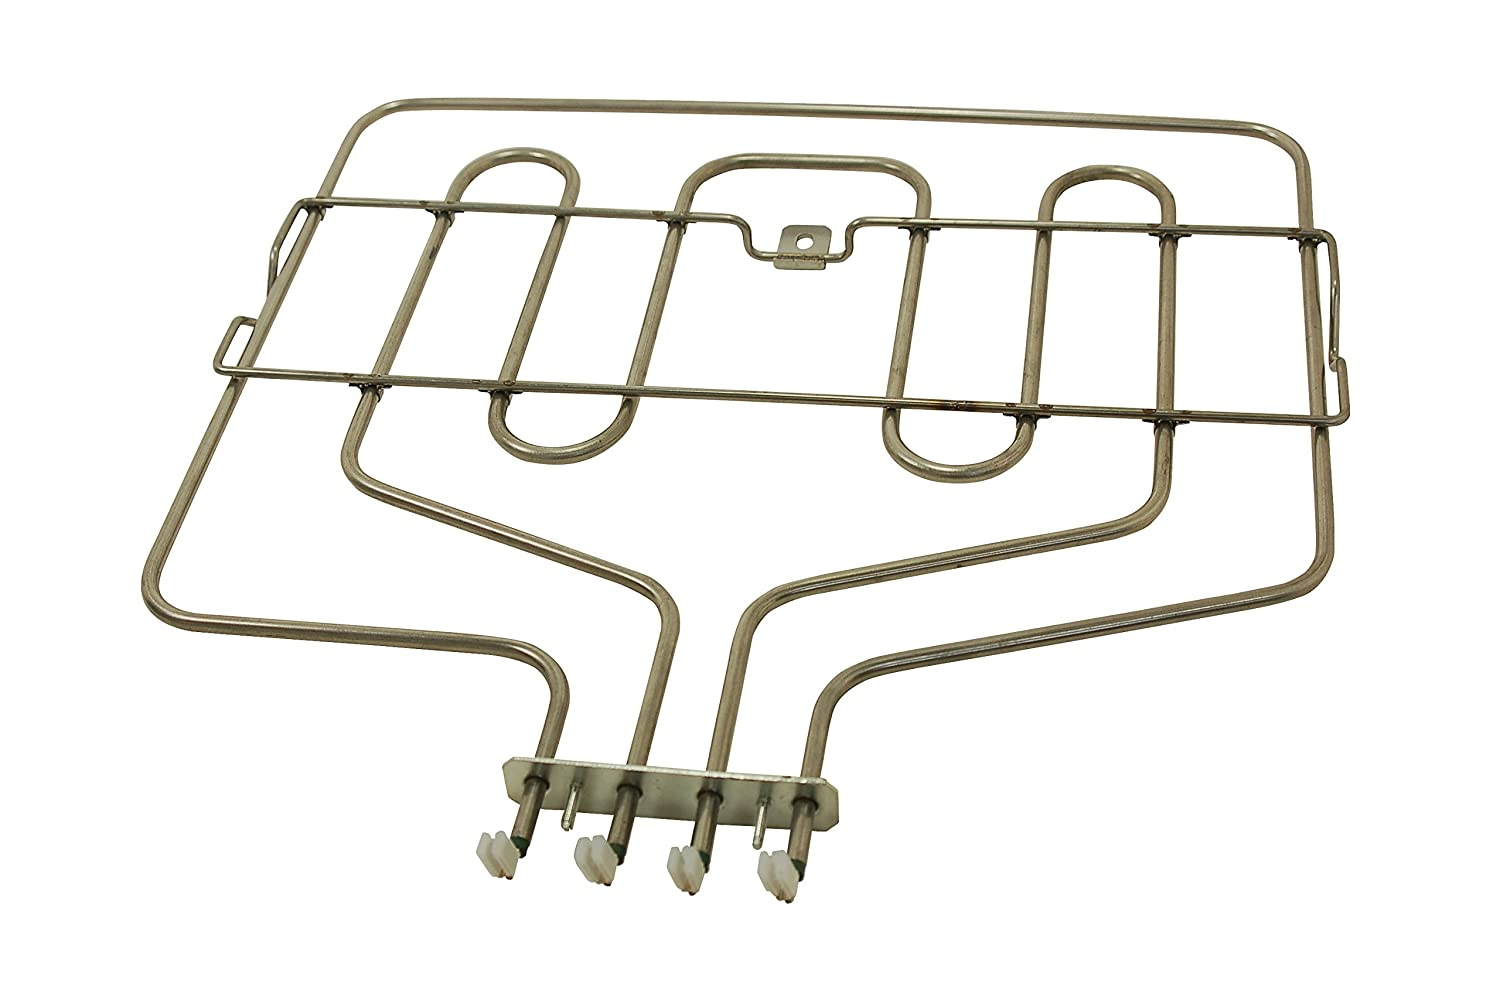 Bosch Neff Siemens  Oven Grill Heater Element Equivalent to part number 358481